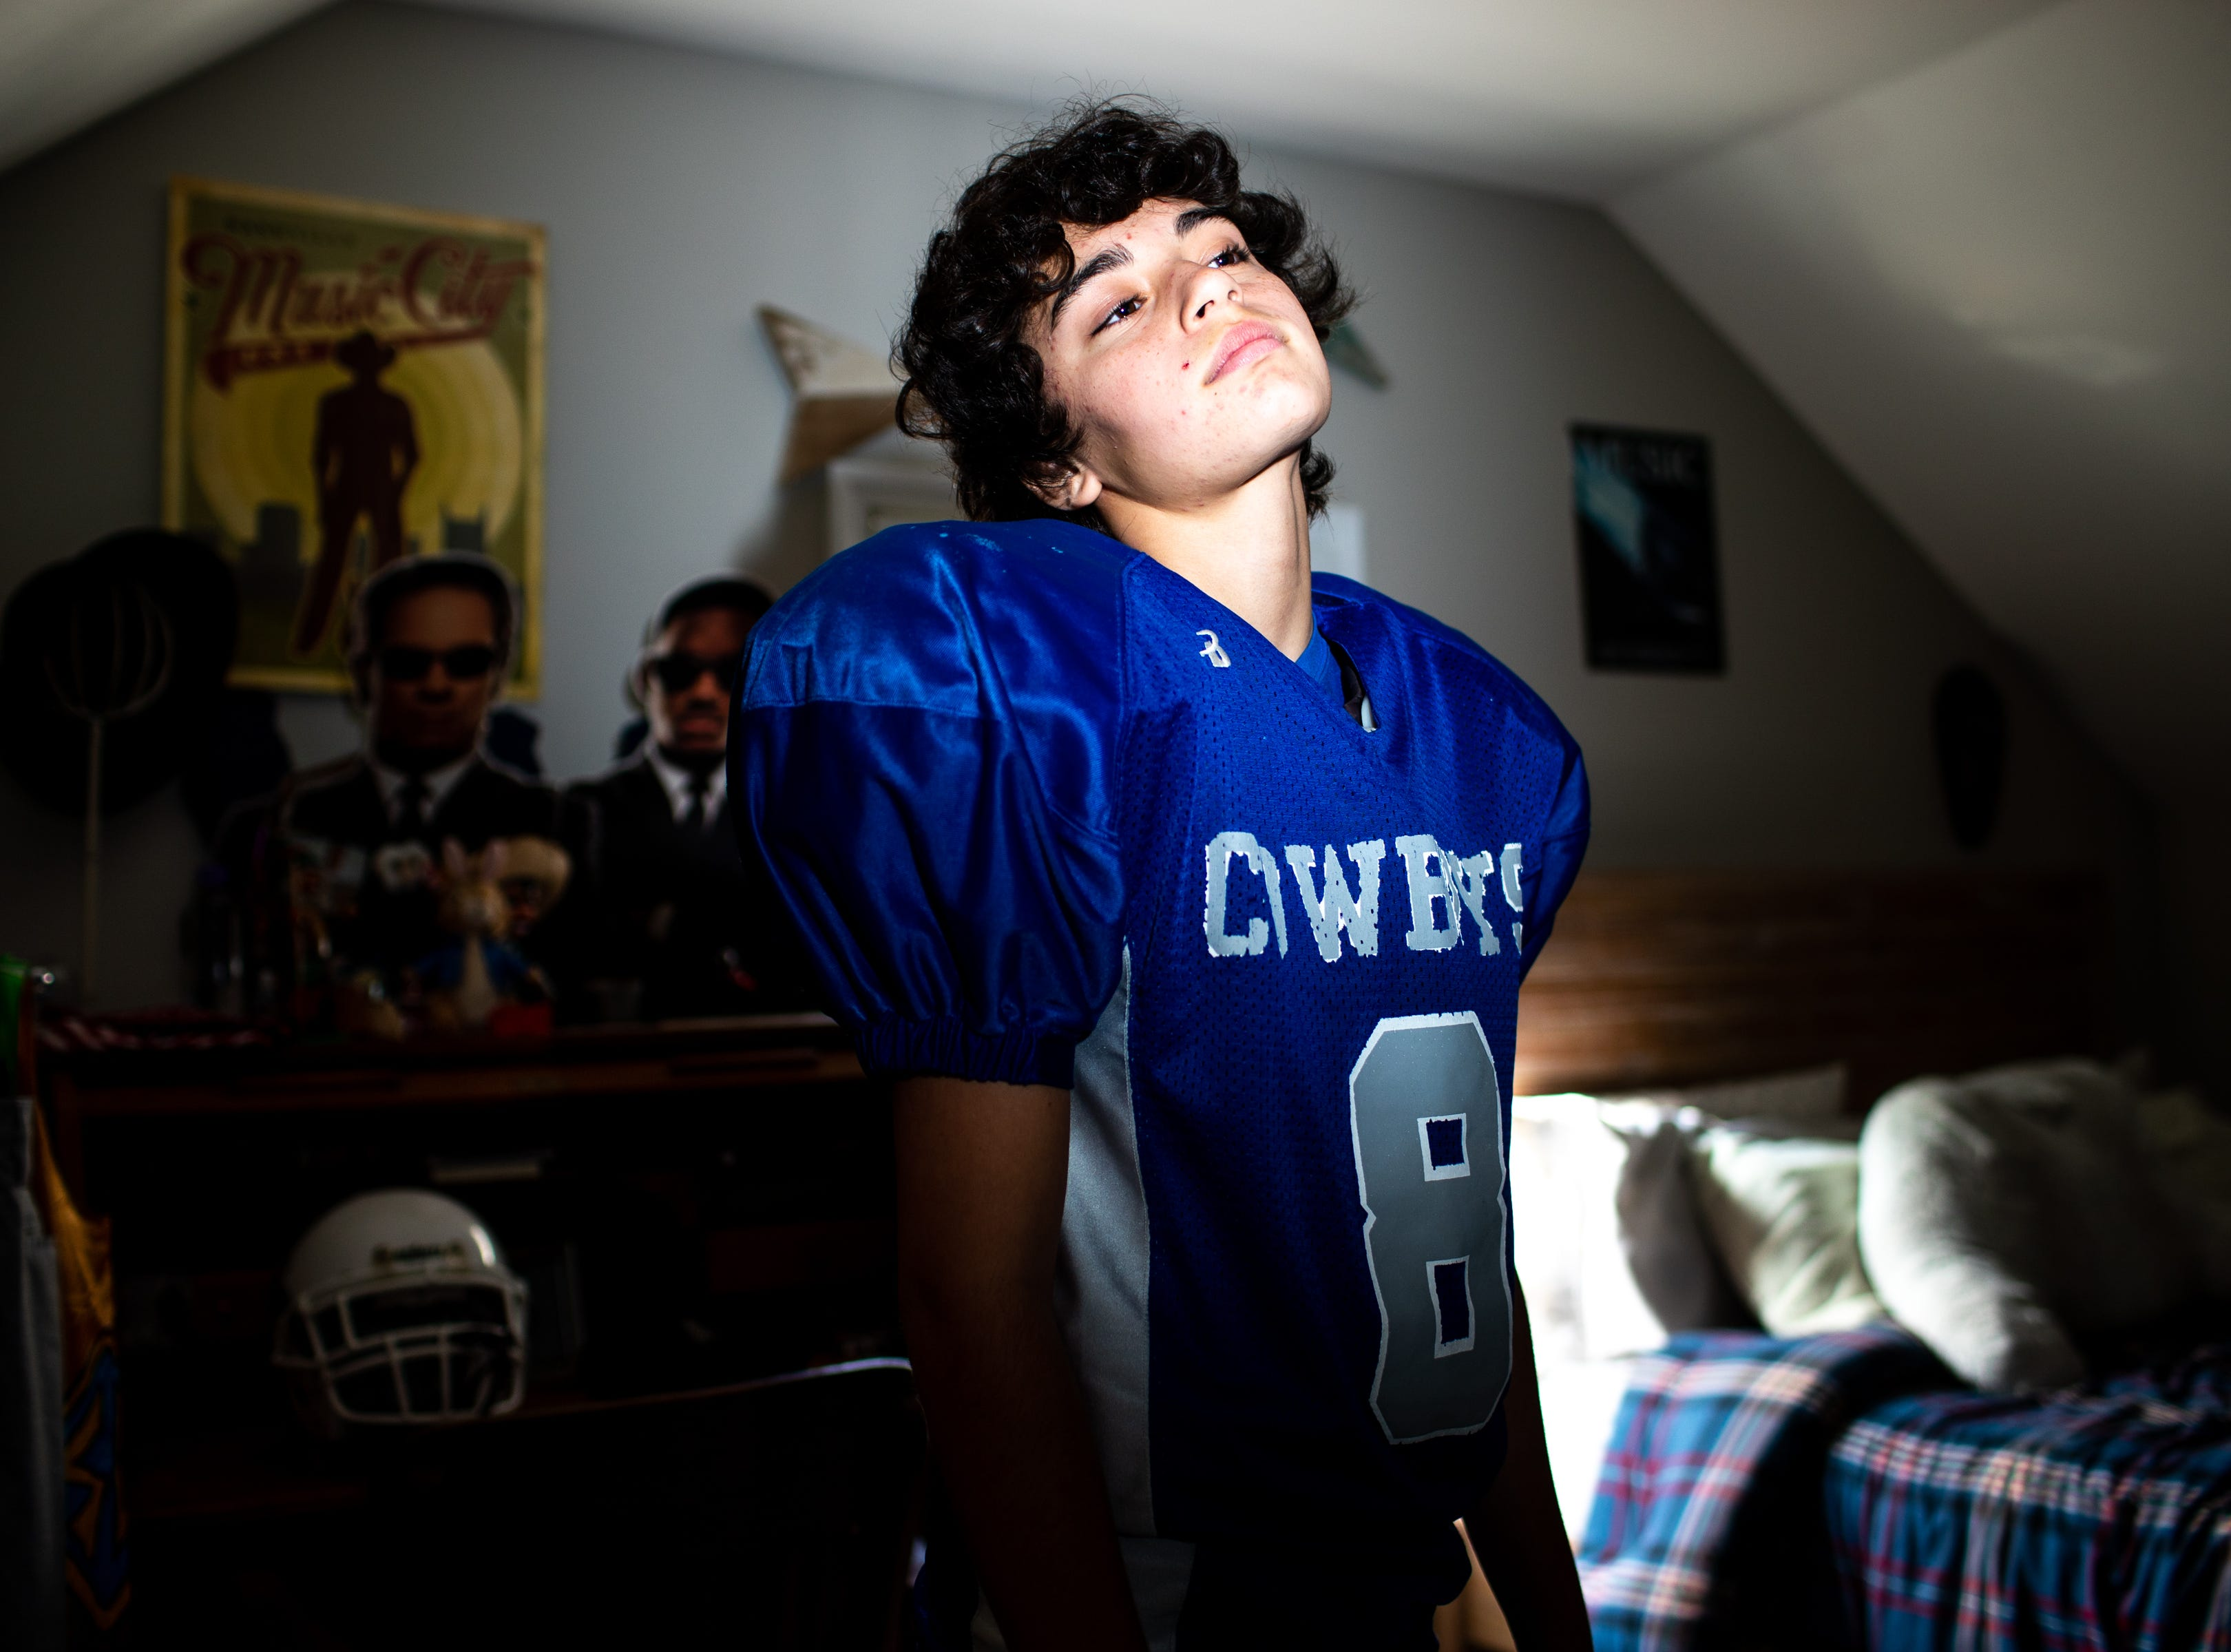 Richview Middle School Cowboys cornerback Ari Grimes, 14, poses for a portrait in his uniform at their home Saturday, Nov. 3, 2018, in Clarksville, Tenn.